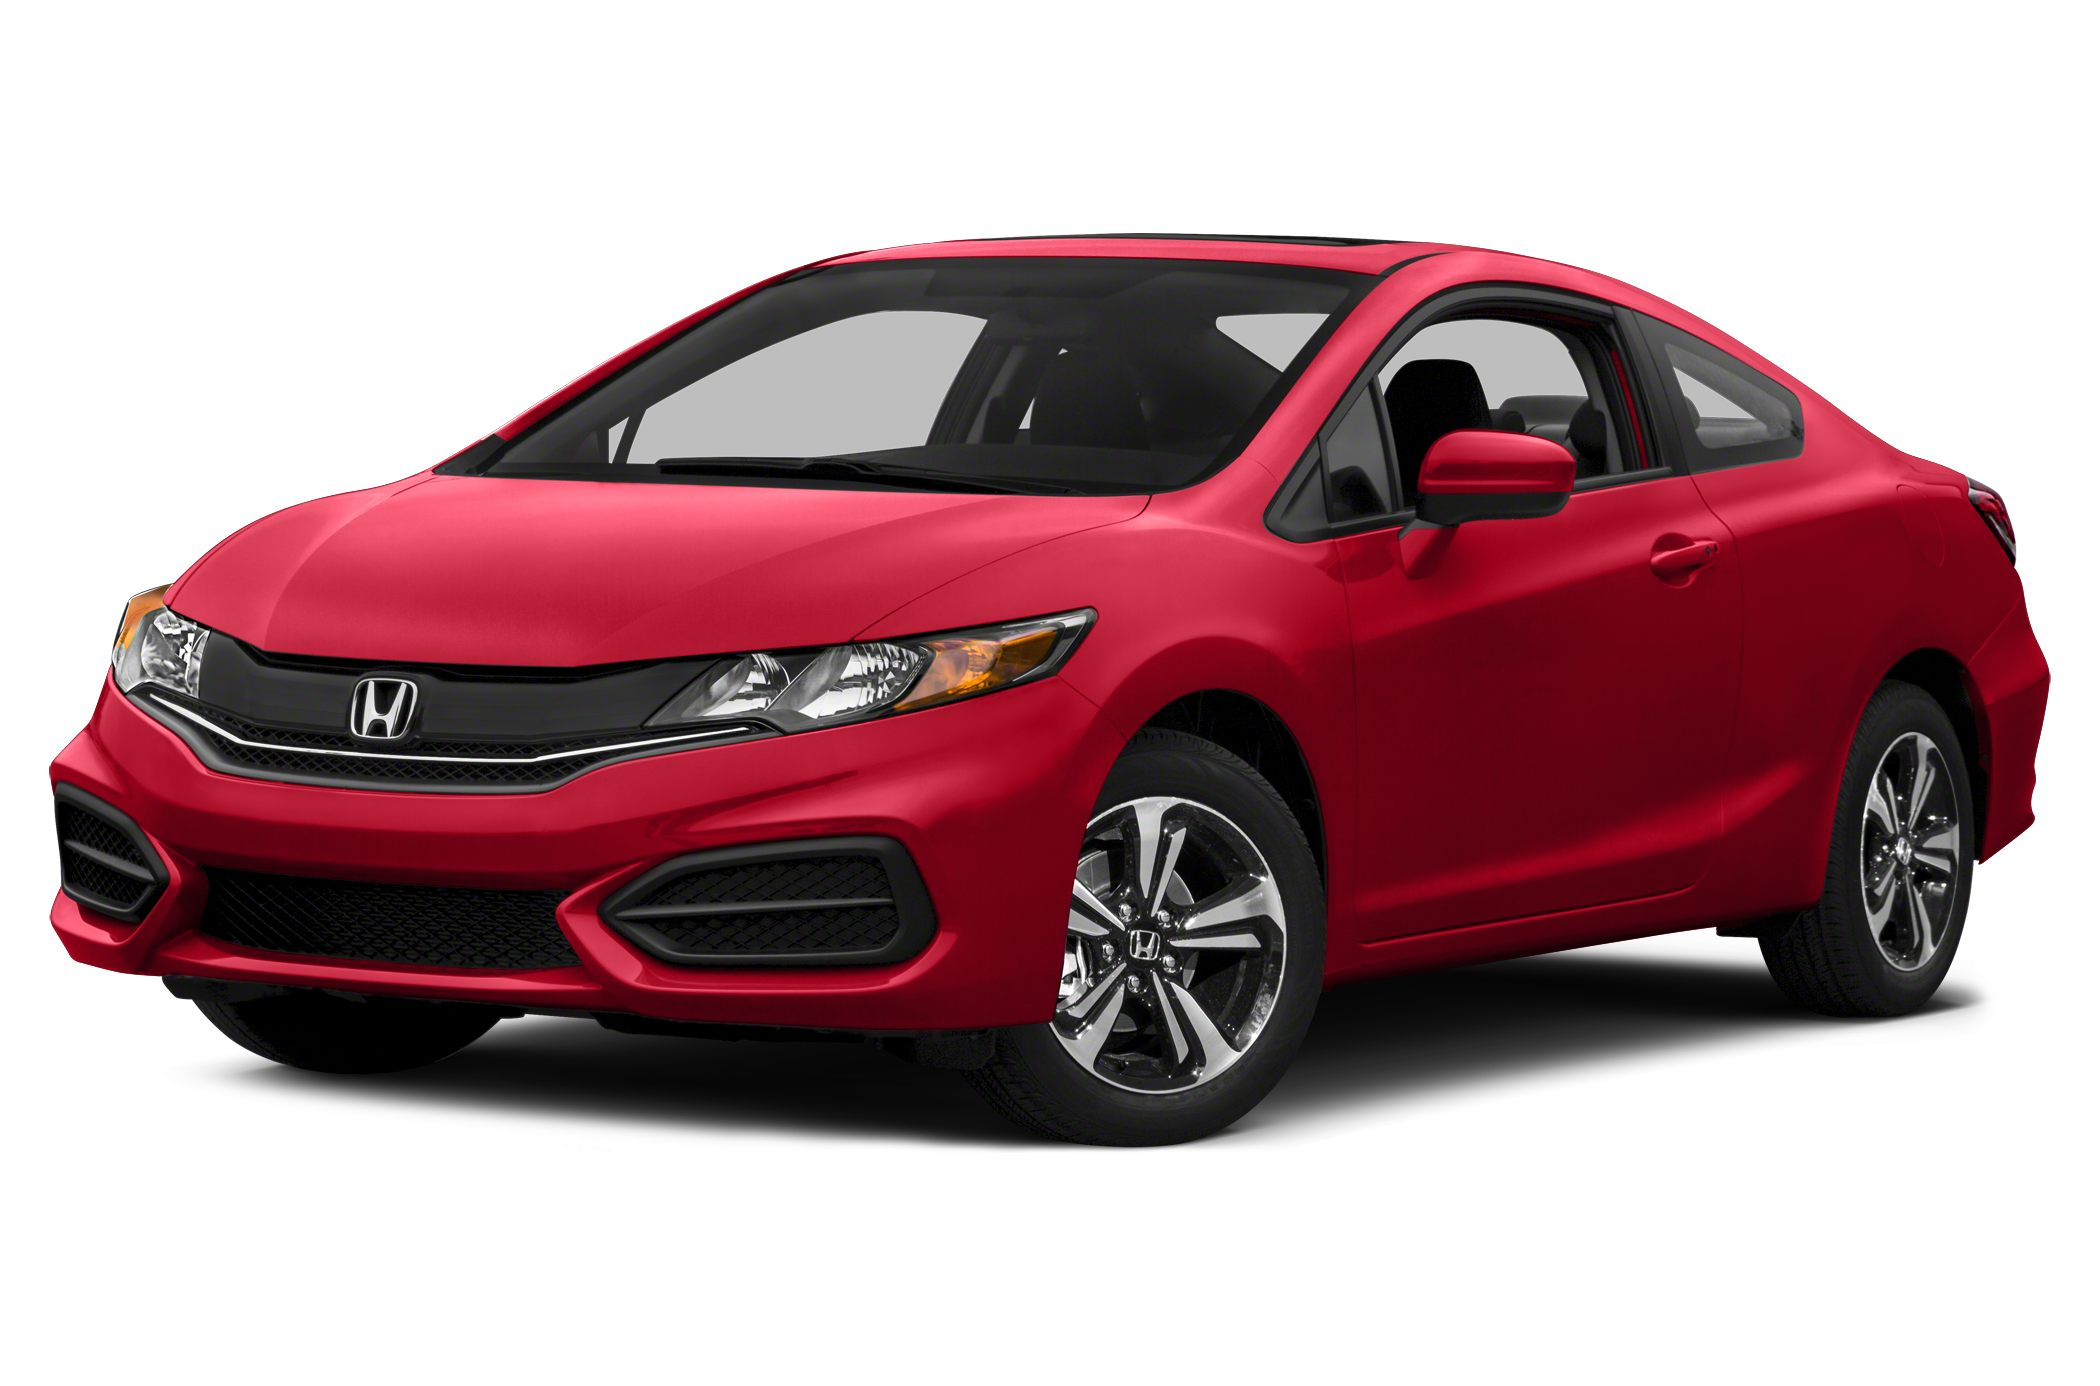 2014 Honda Civic LX Sensibility and practicality define the 2014 Honda Civic Simply a great car